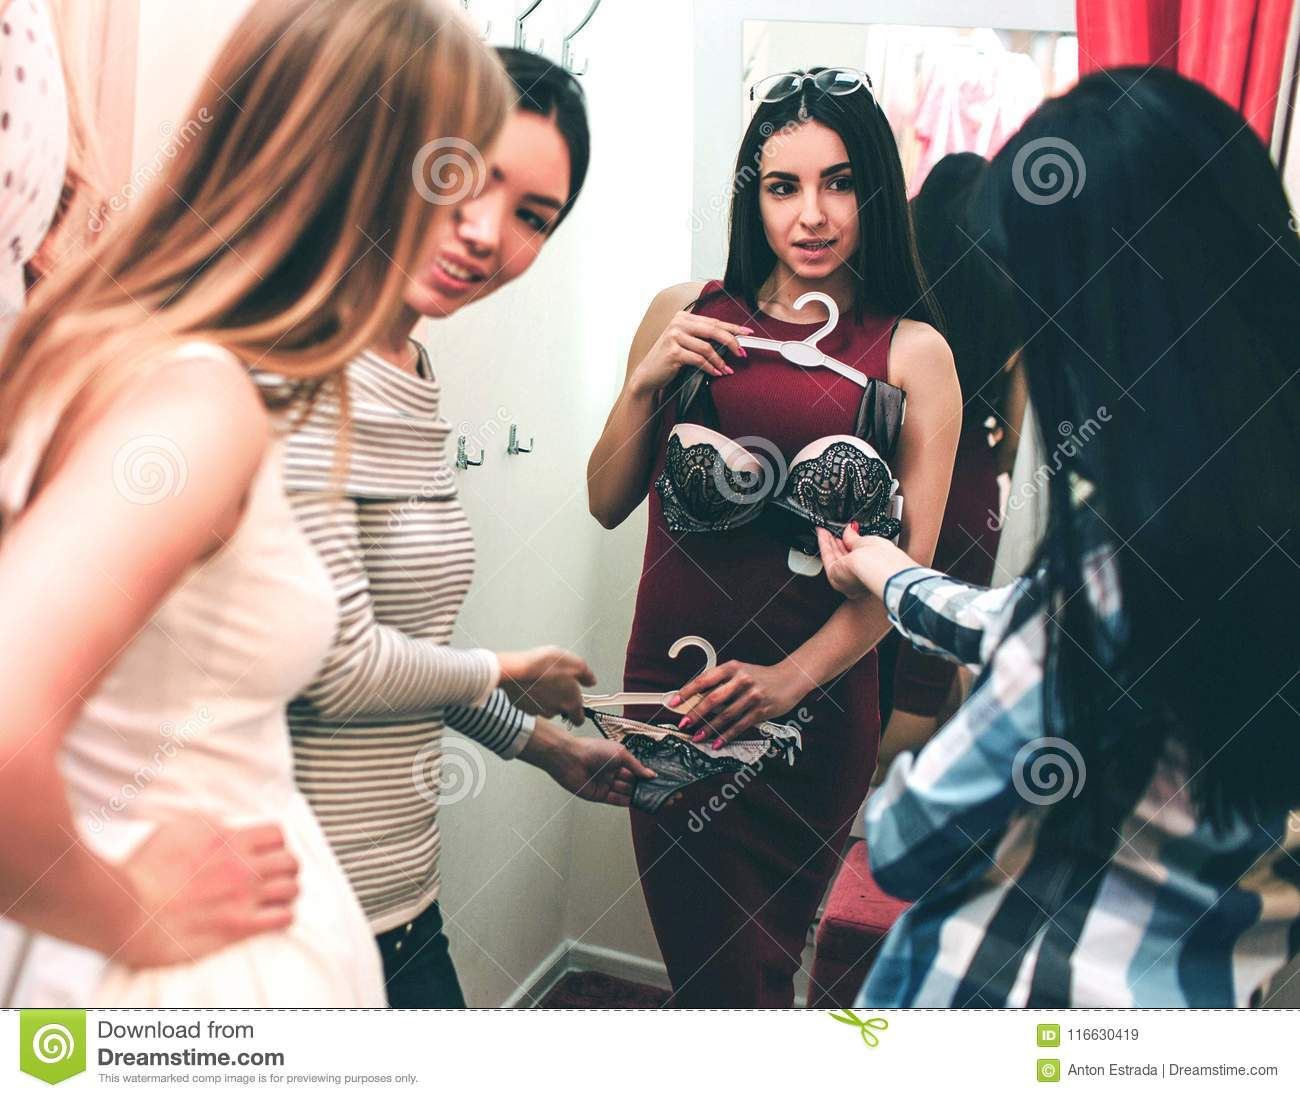 Beautiful girl in red dress is trying on herself bra. She is looking at her friends while they are looking at bra and